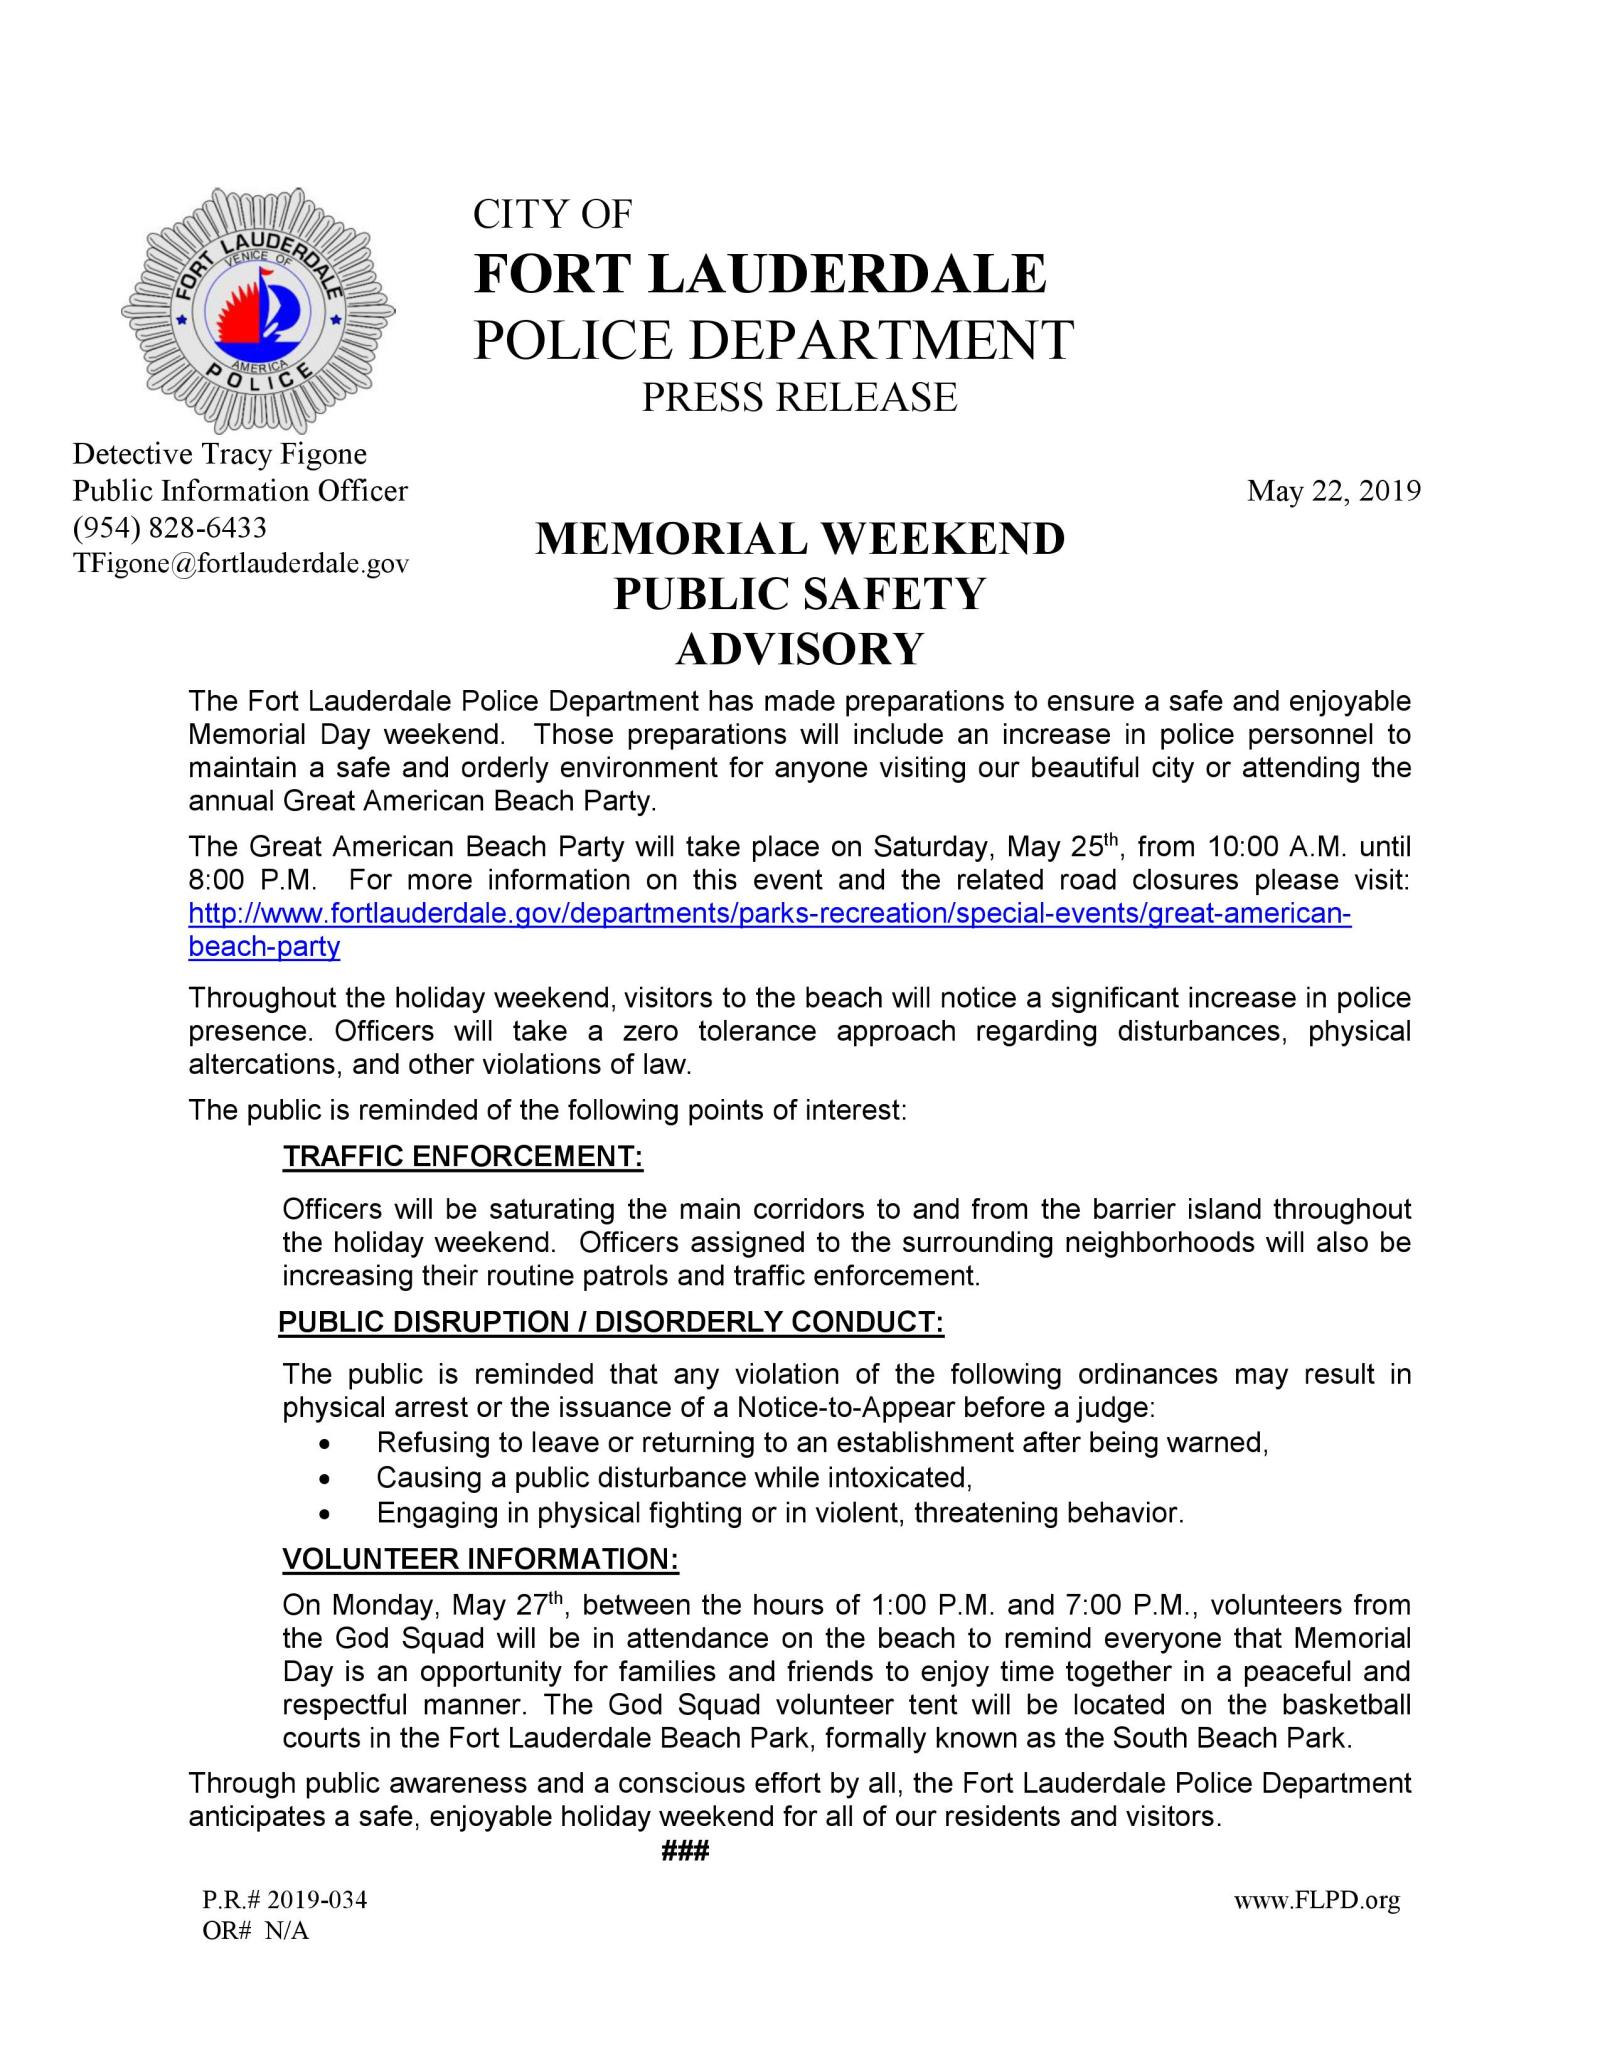 FLPD Memorial Weekend Public Safety Advisory